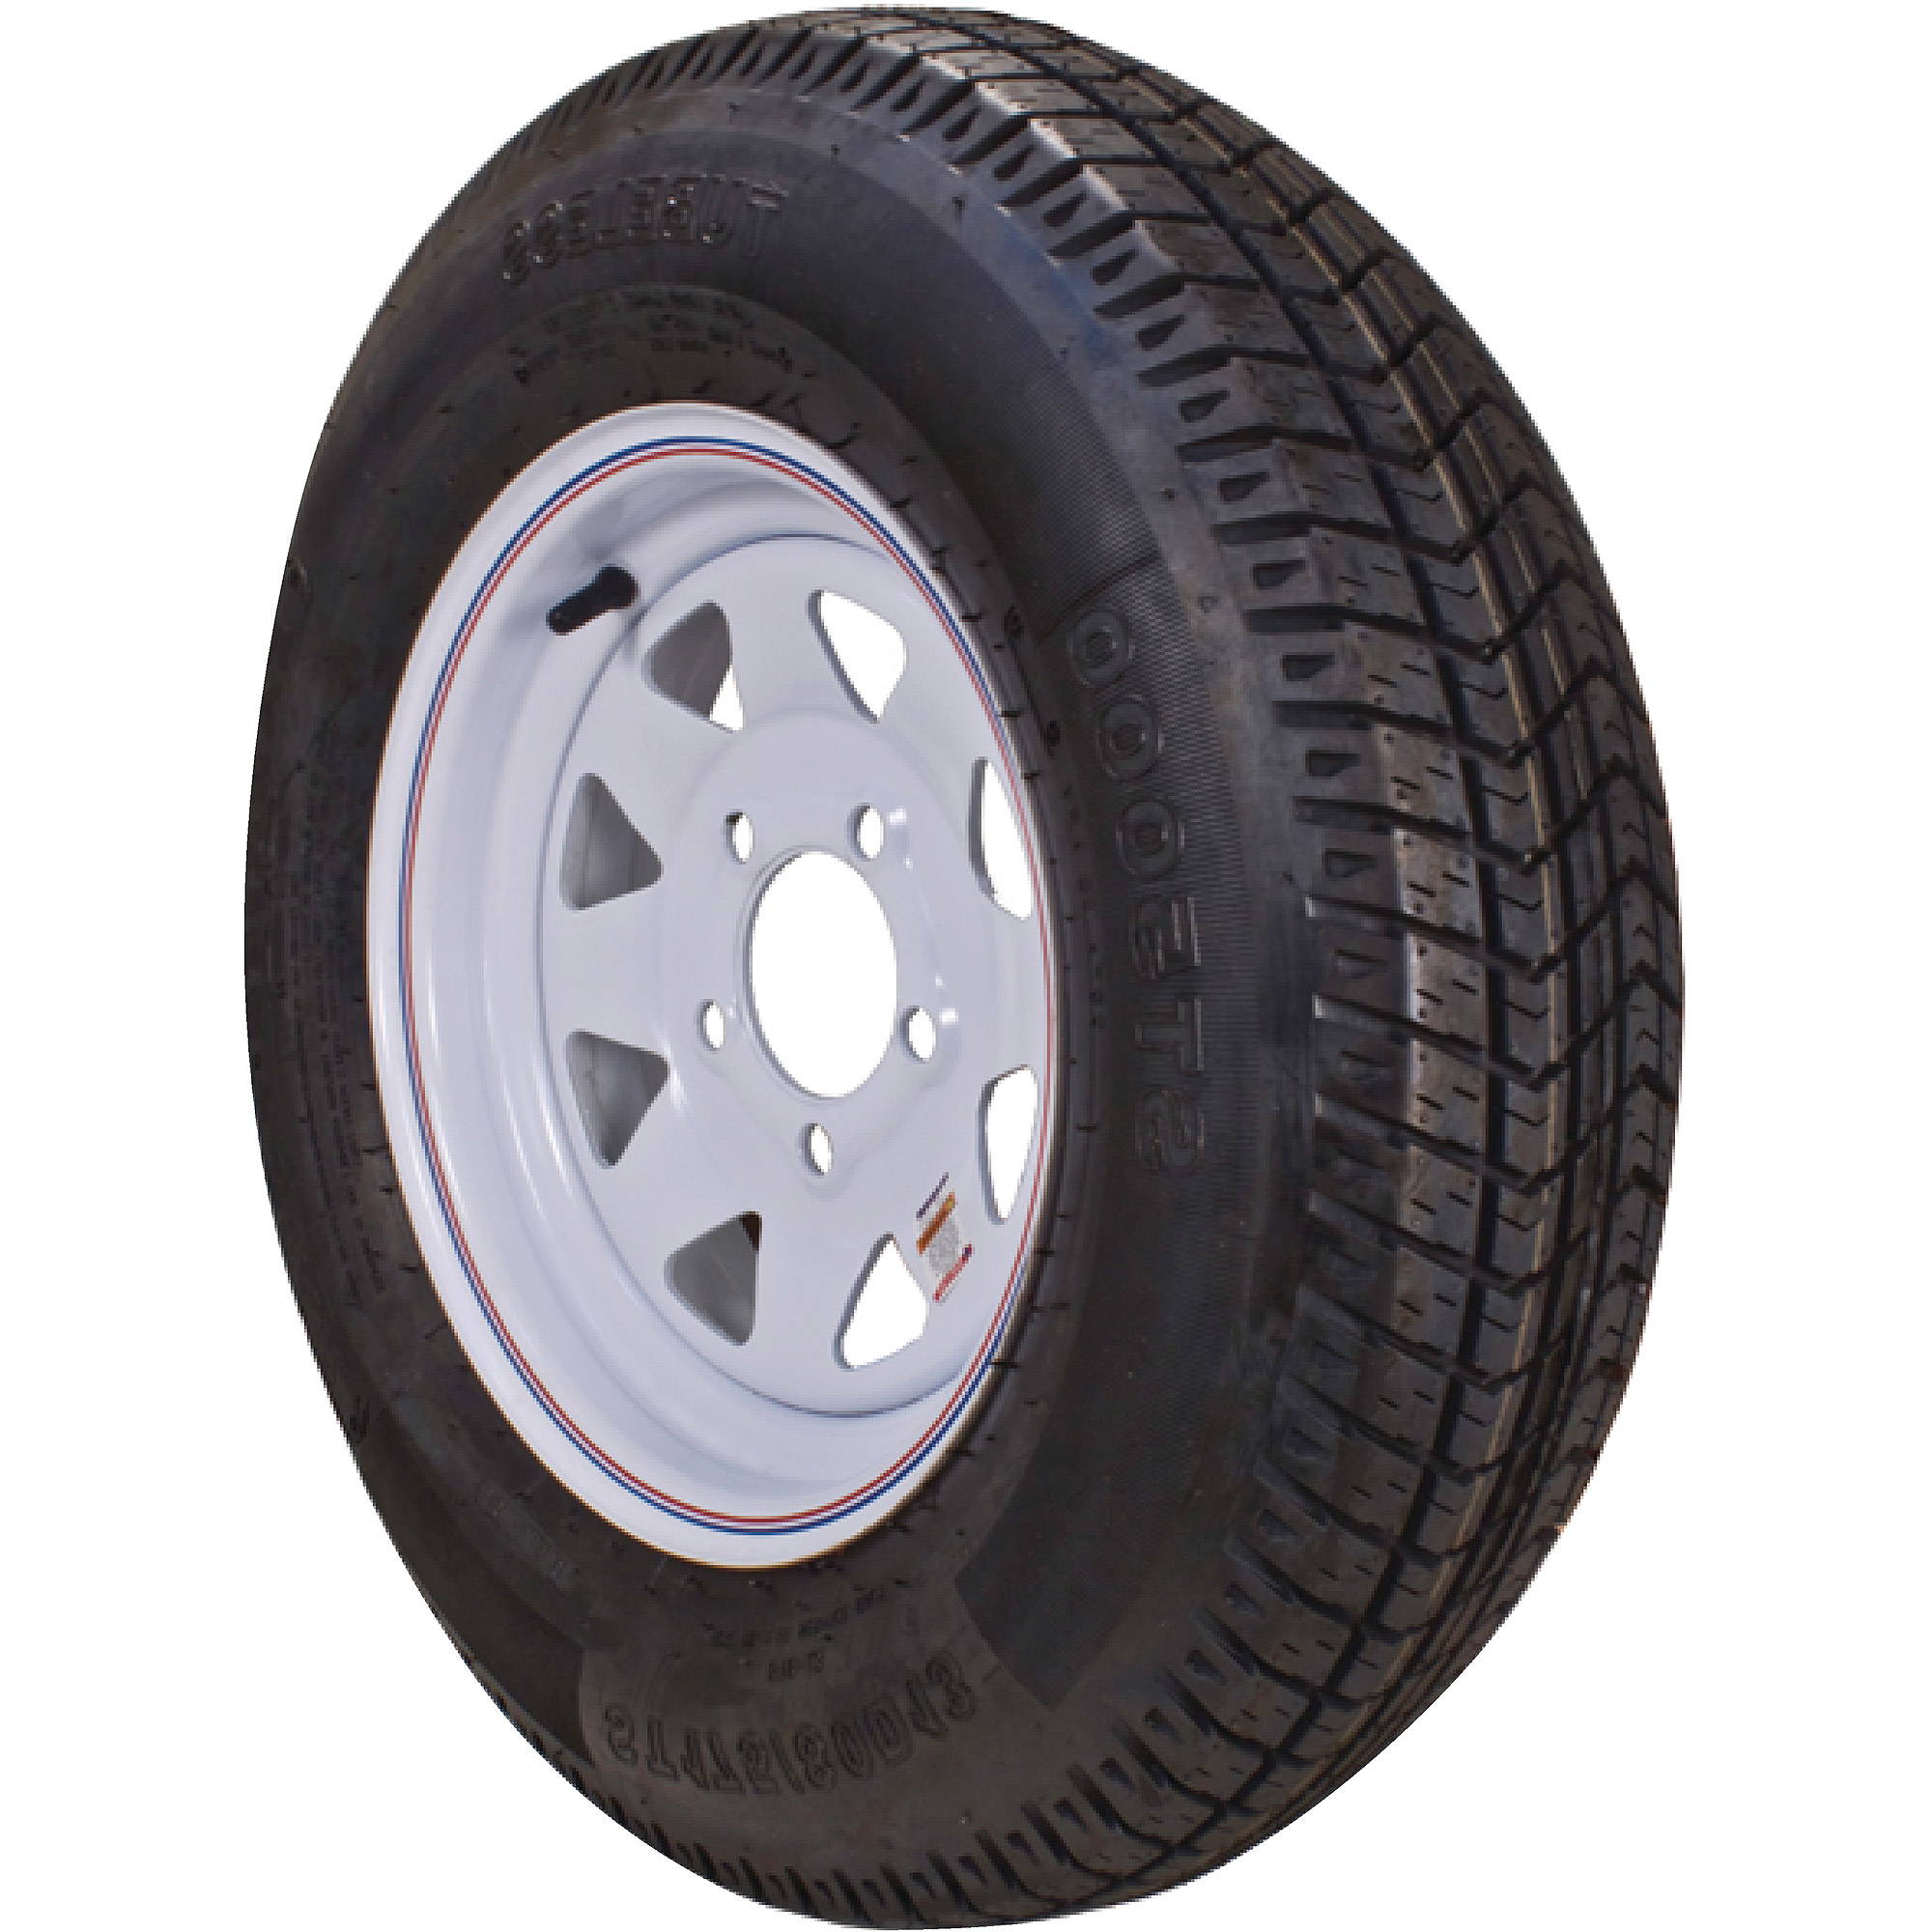 Motor Home And Rv Tires Walmart Com >> Trailer King Ii St Radial St225 75r15 Lre 10 Ply Tire